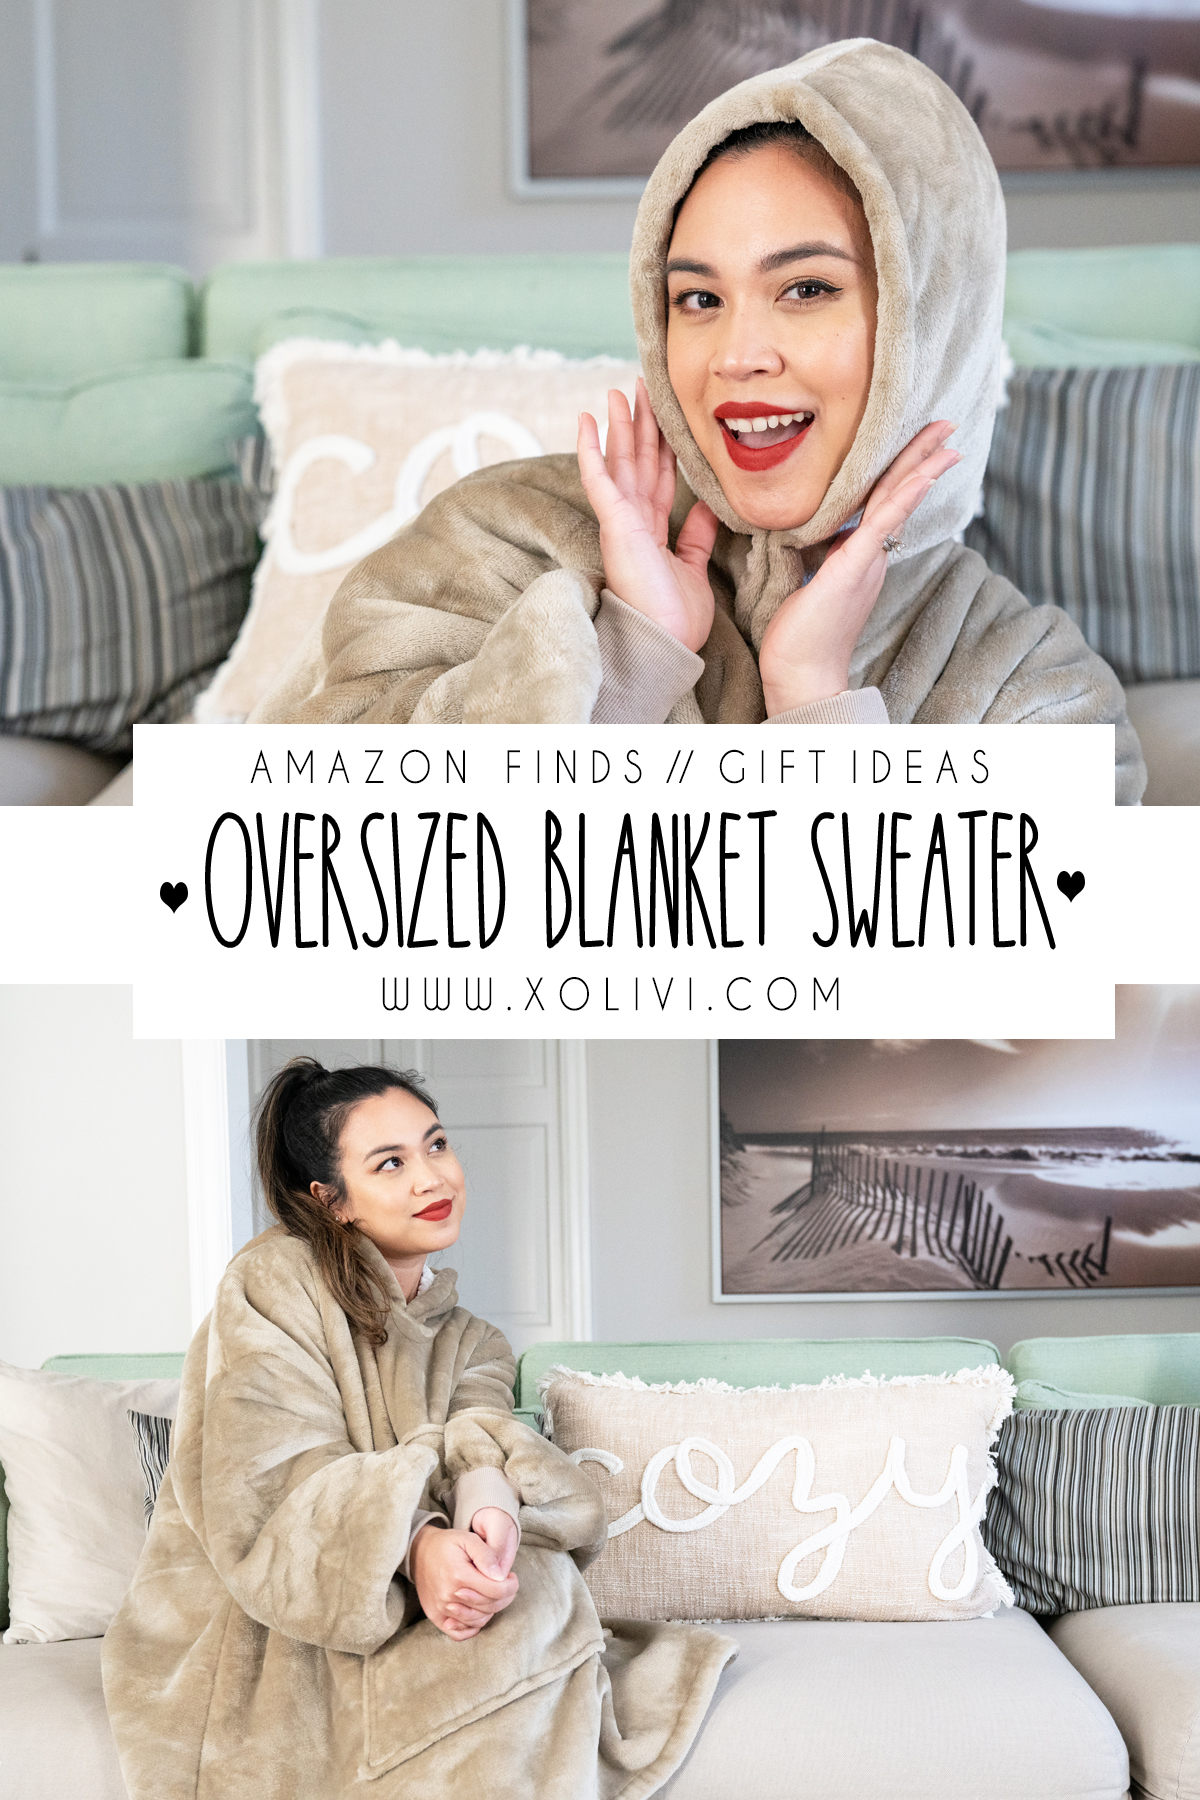 OVERSIZED BLANKET SWEATER